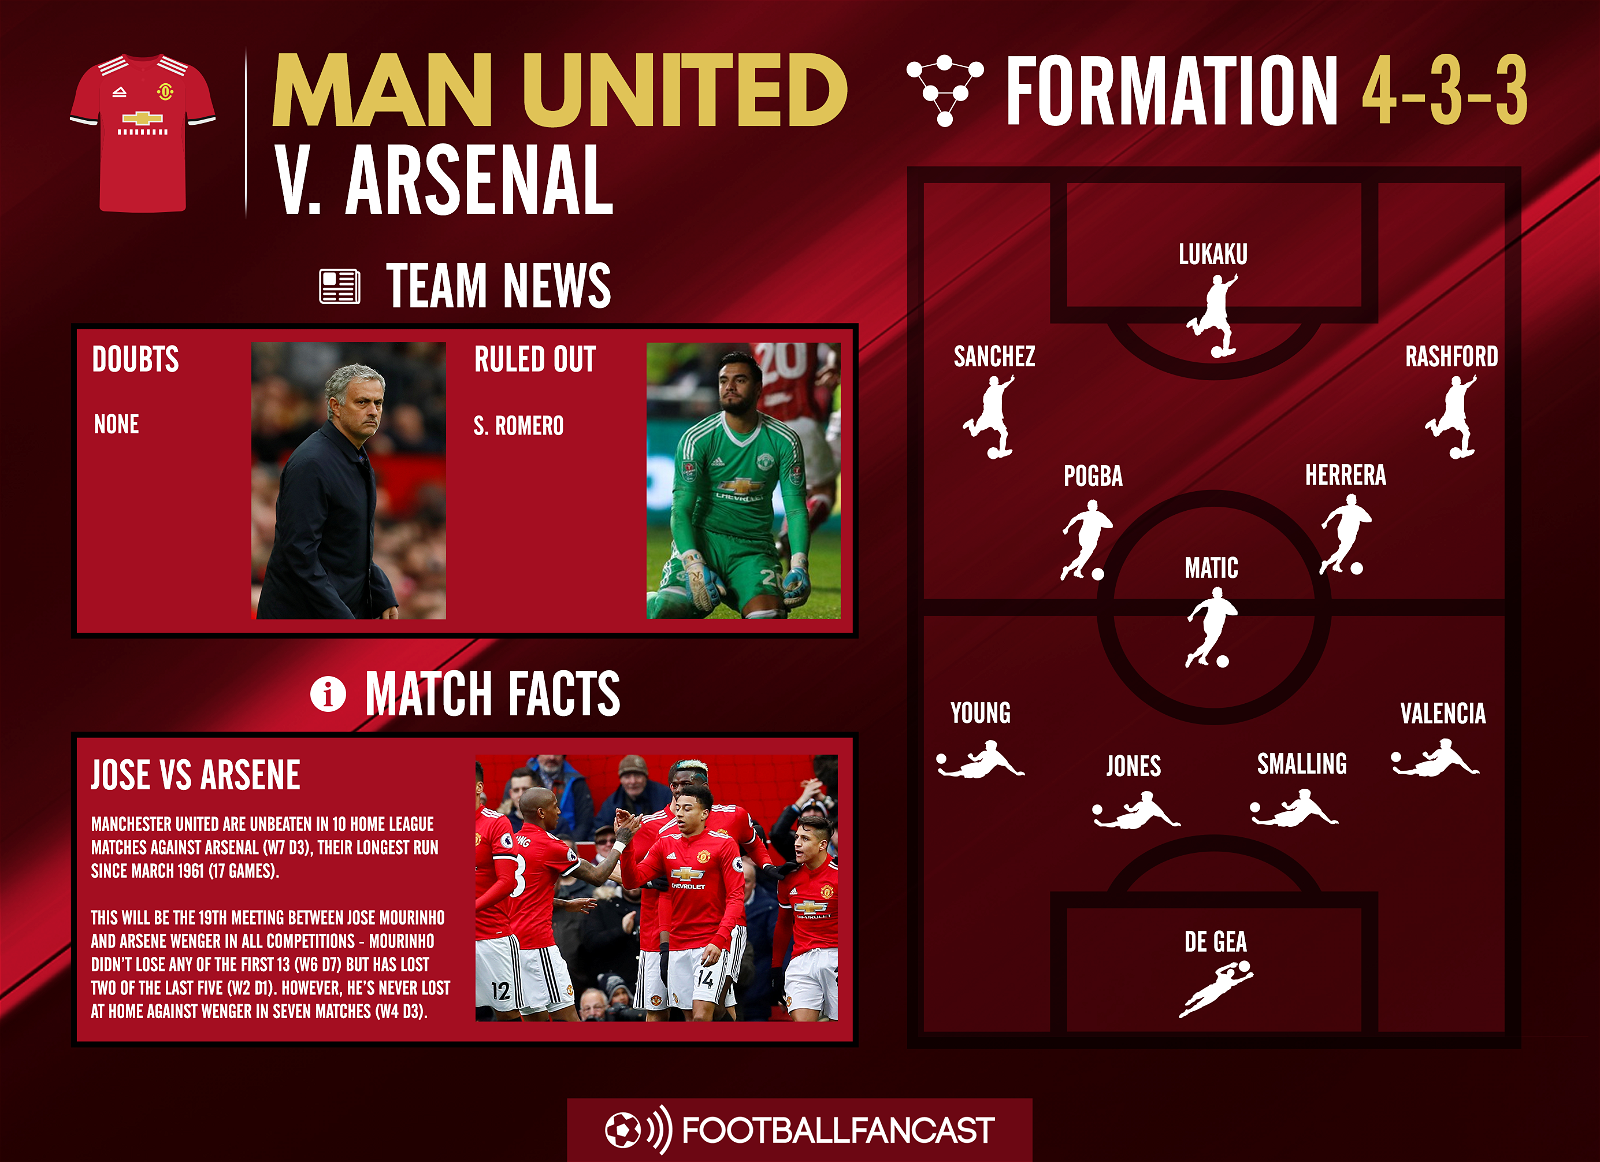 Manchester United Team News for Arsenal clash